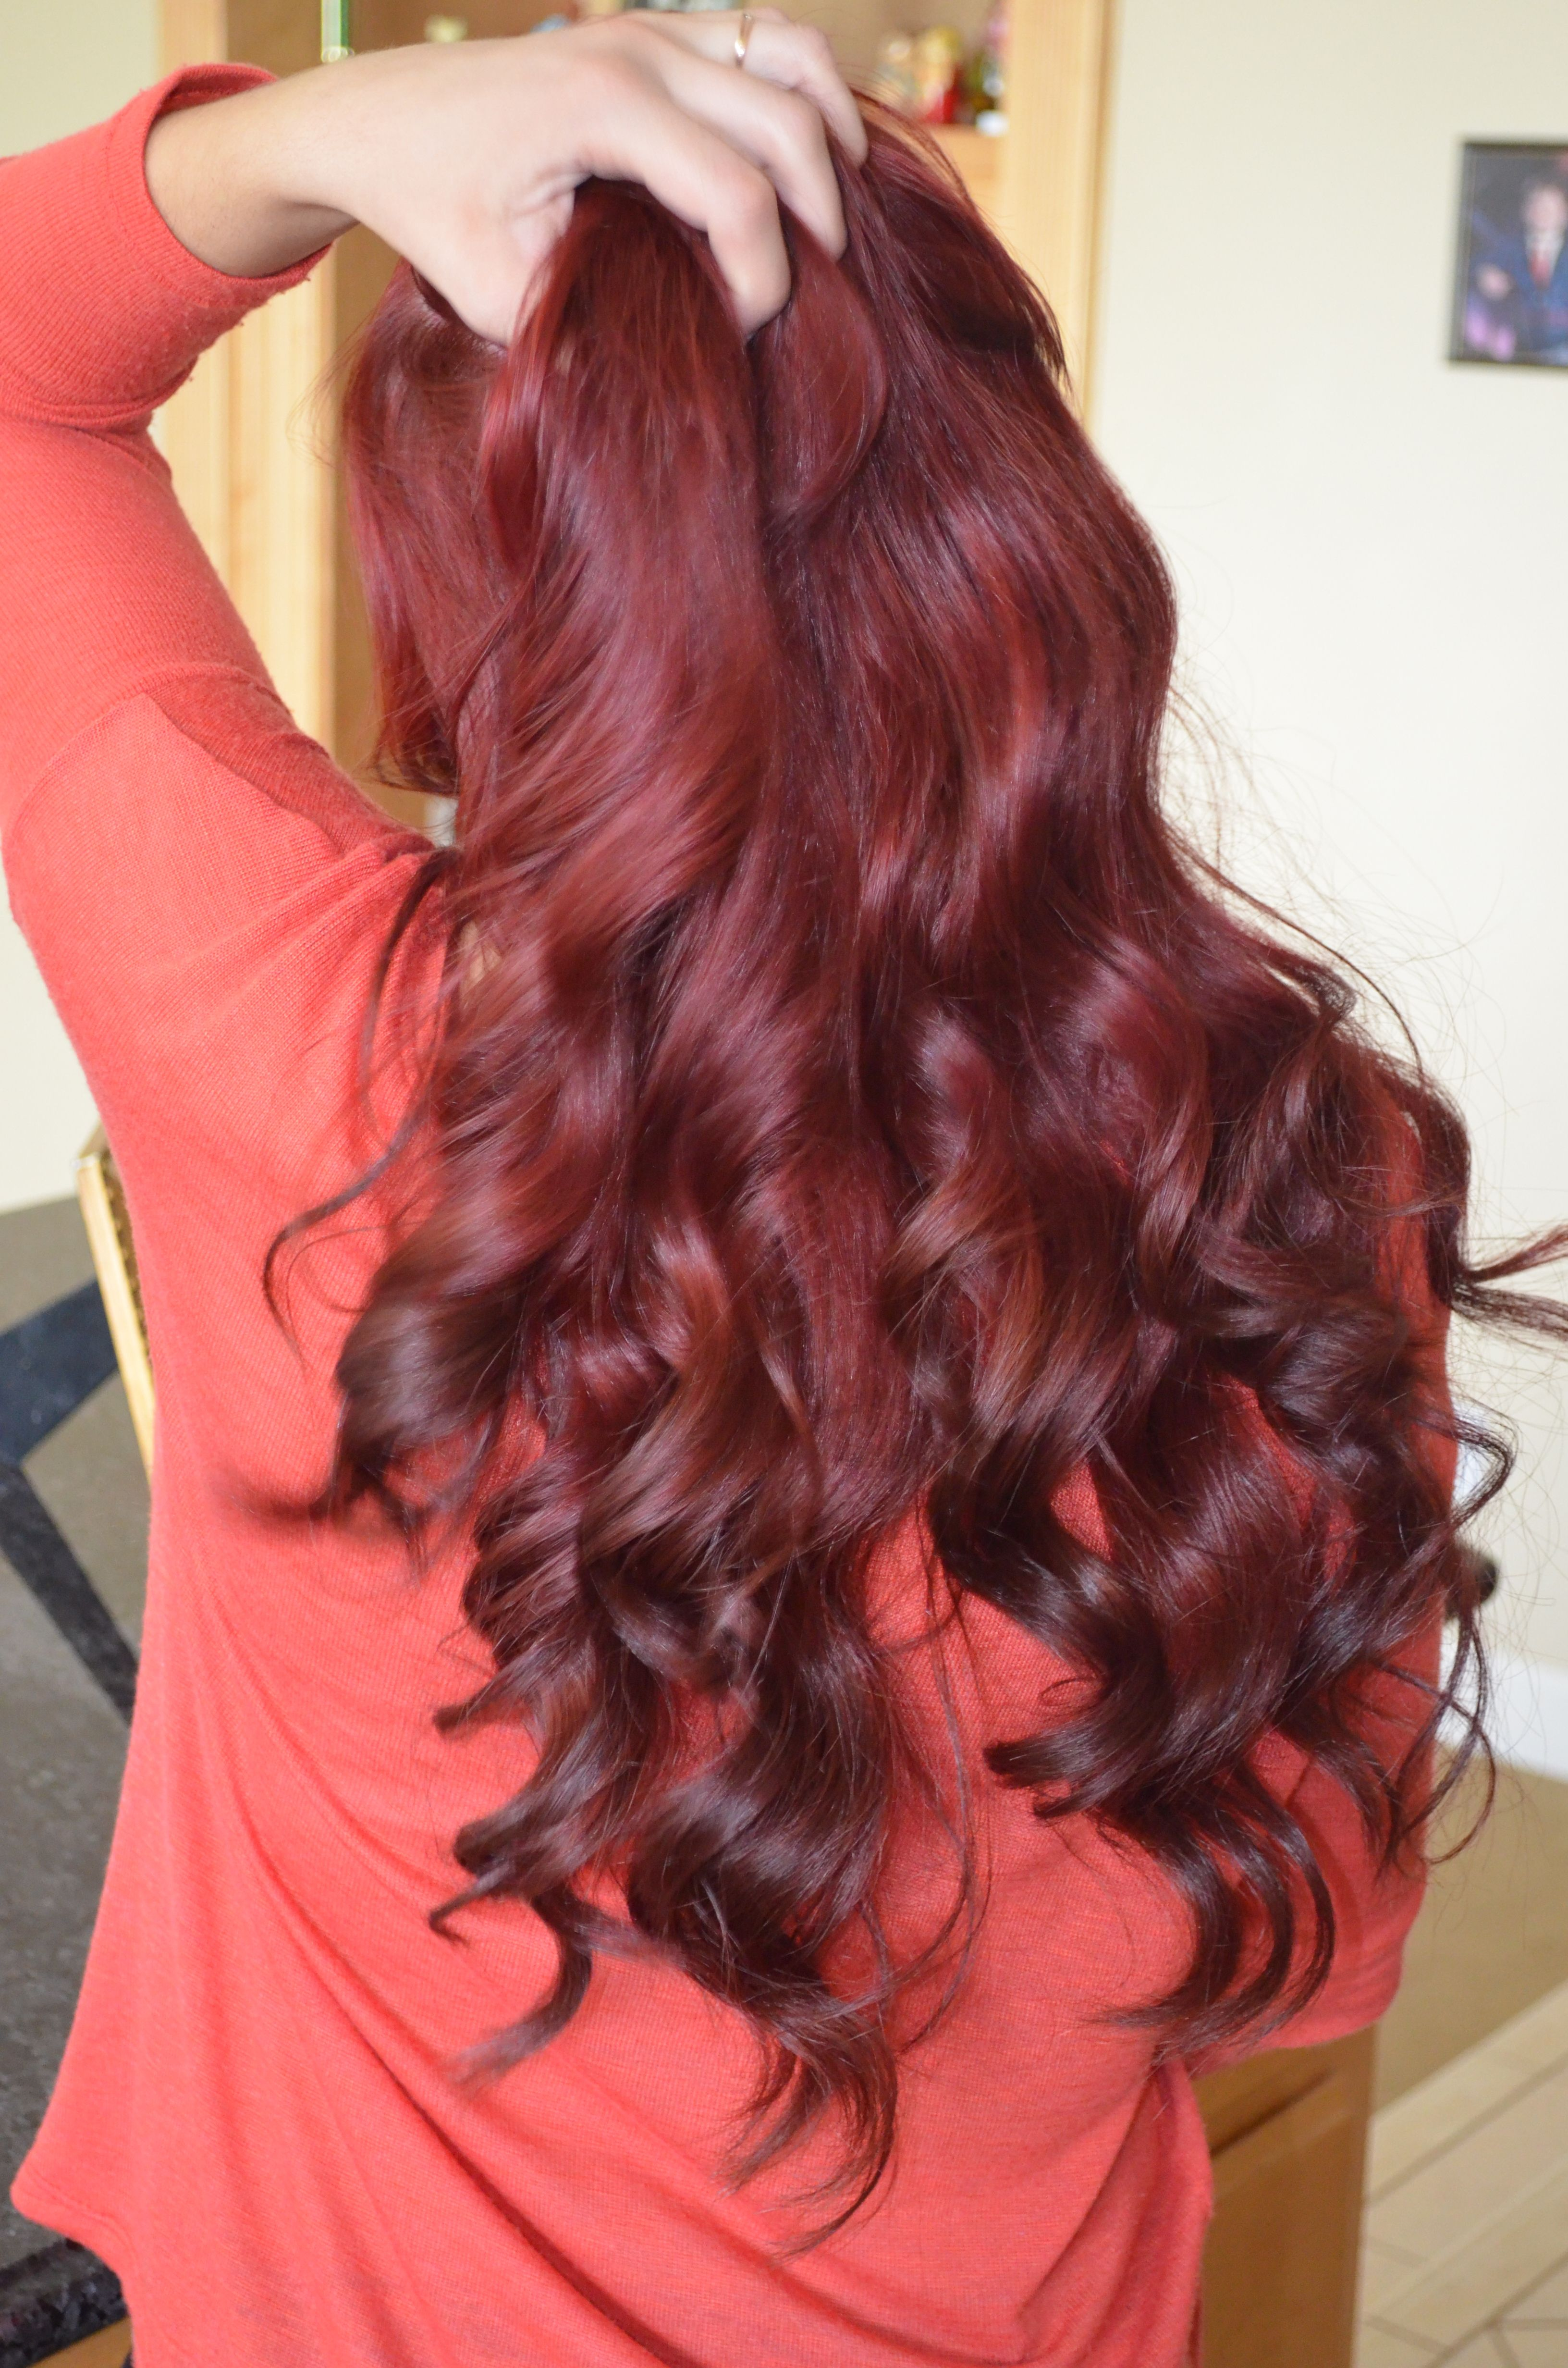 Red Hair with brown ombre tips Gina Huff Masciulli this would look